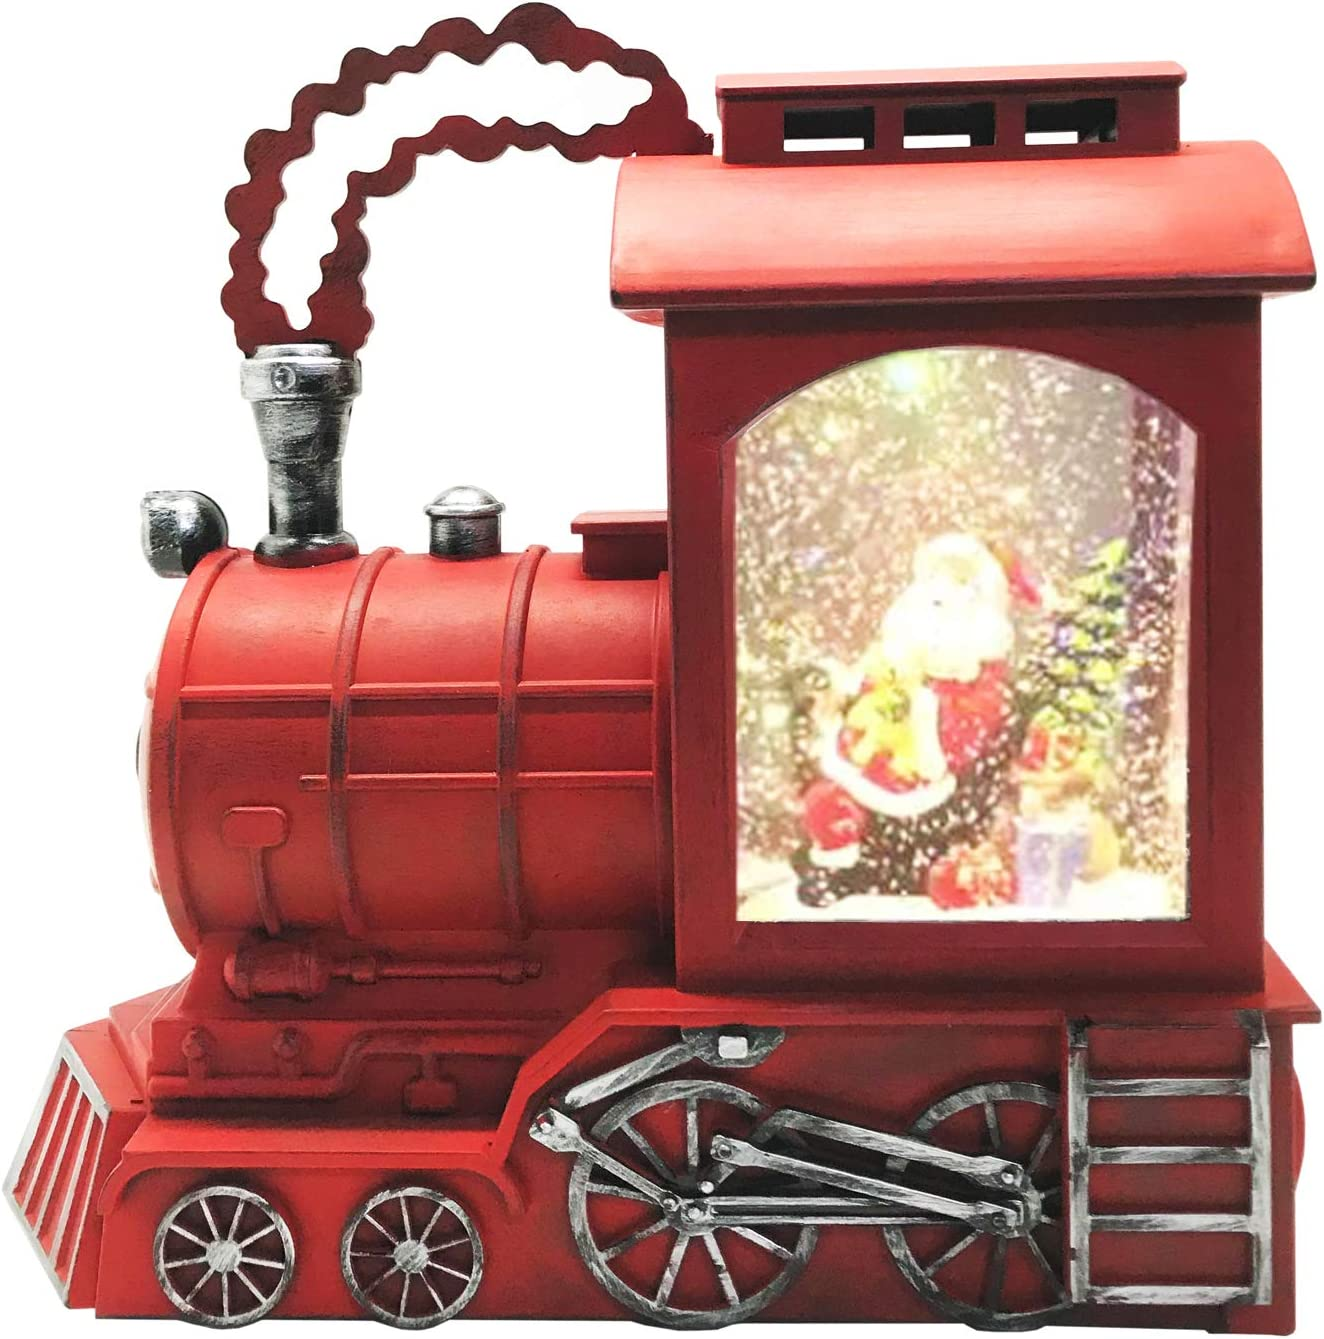 Lightahead Musical Light up Swirling Glitter Train Engine with Santa Sitting Inside Figurine, Warm White LED Light and 8 Melodies